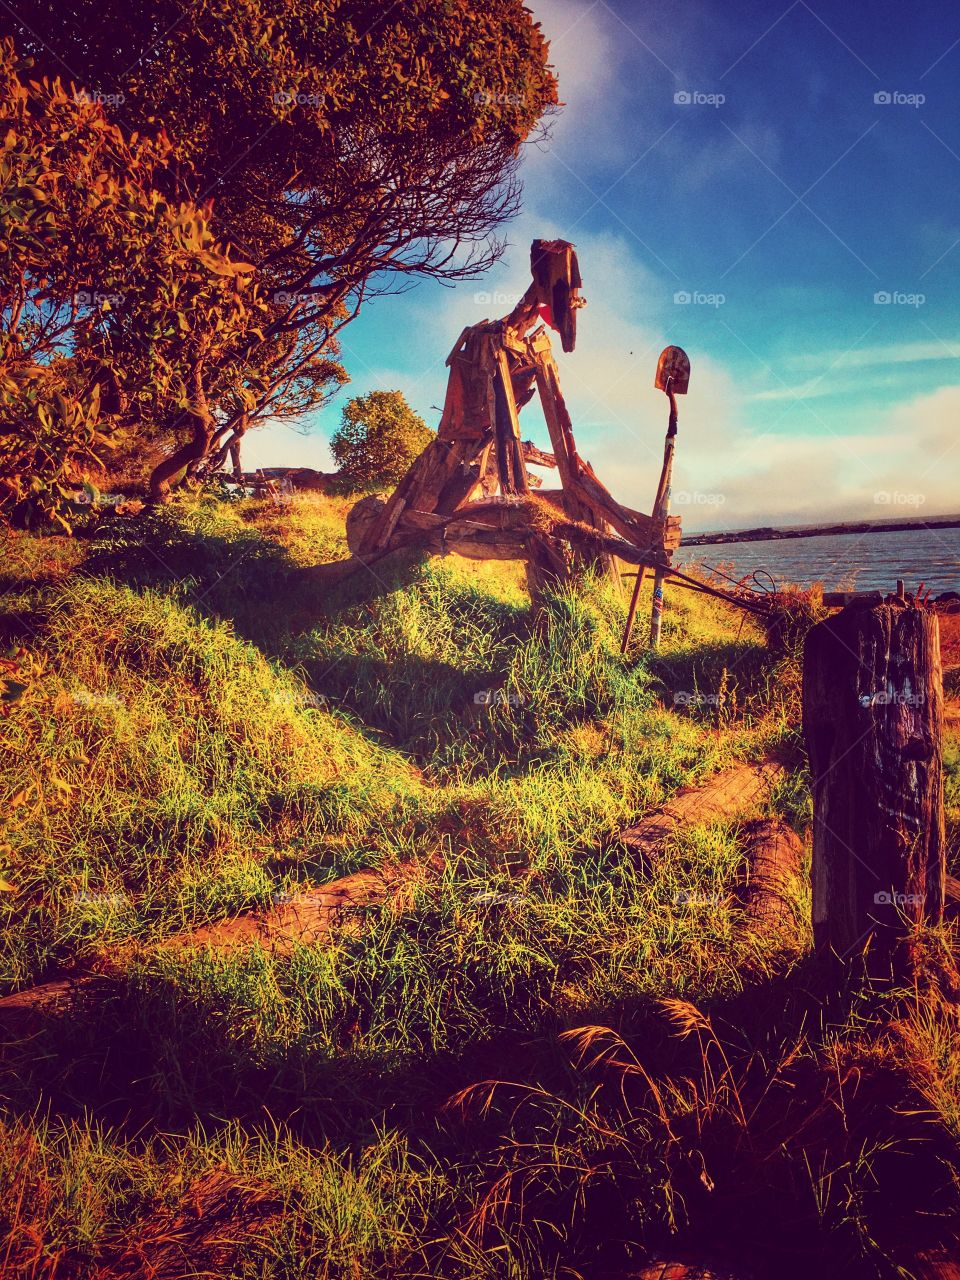 Autumn is here! Albany Bulb